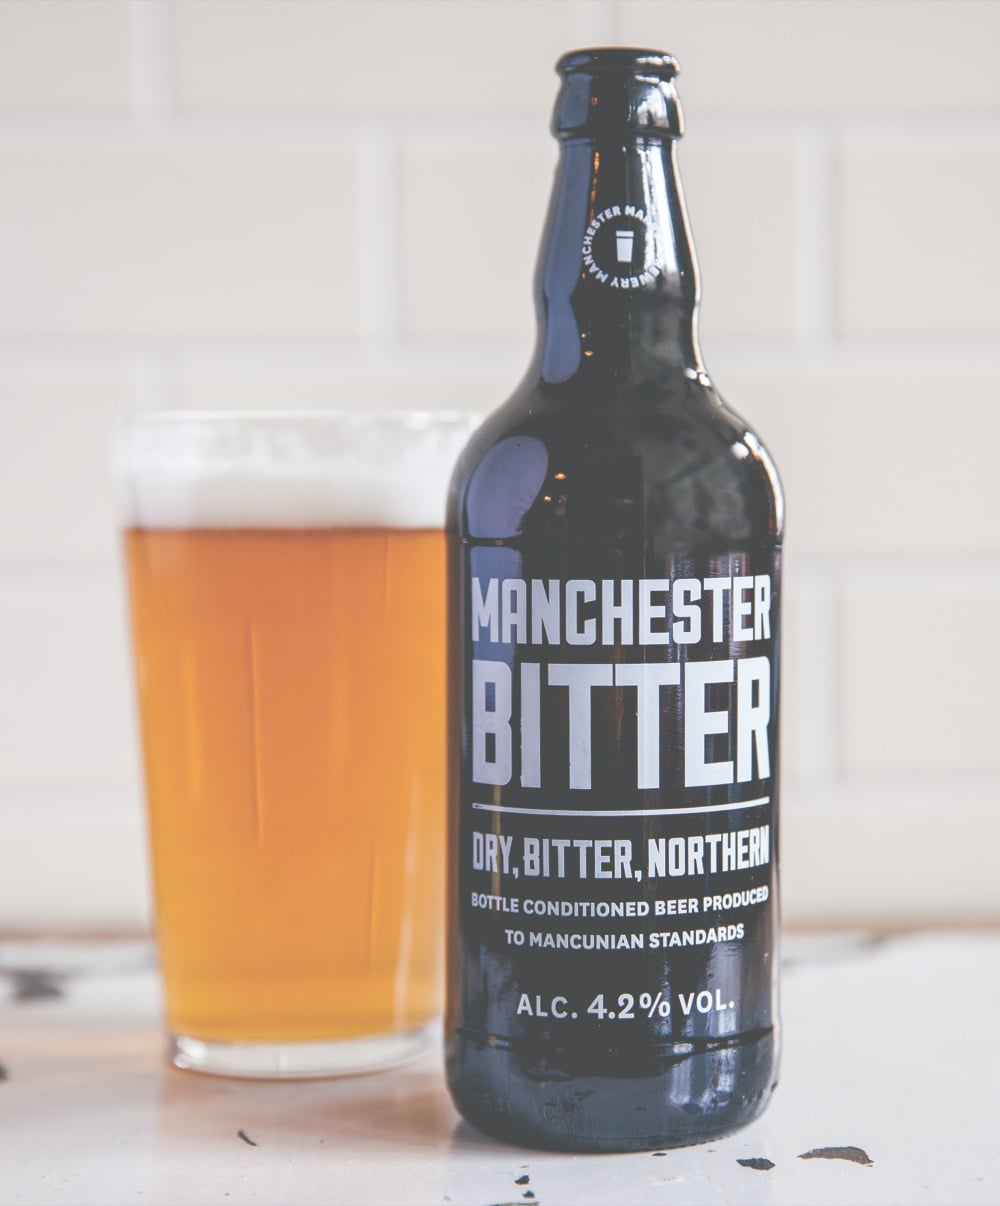 Manchester bitter - Marble Brewery